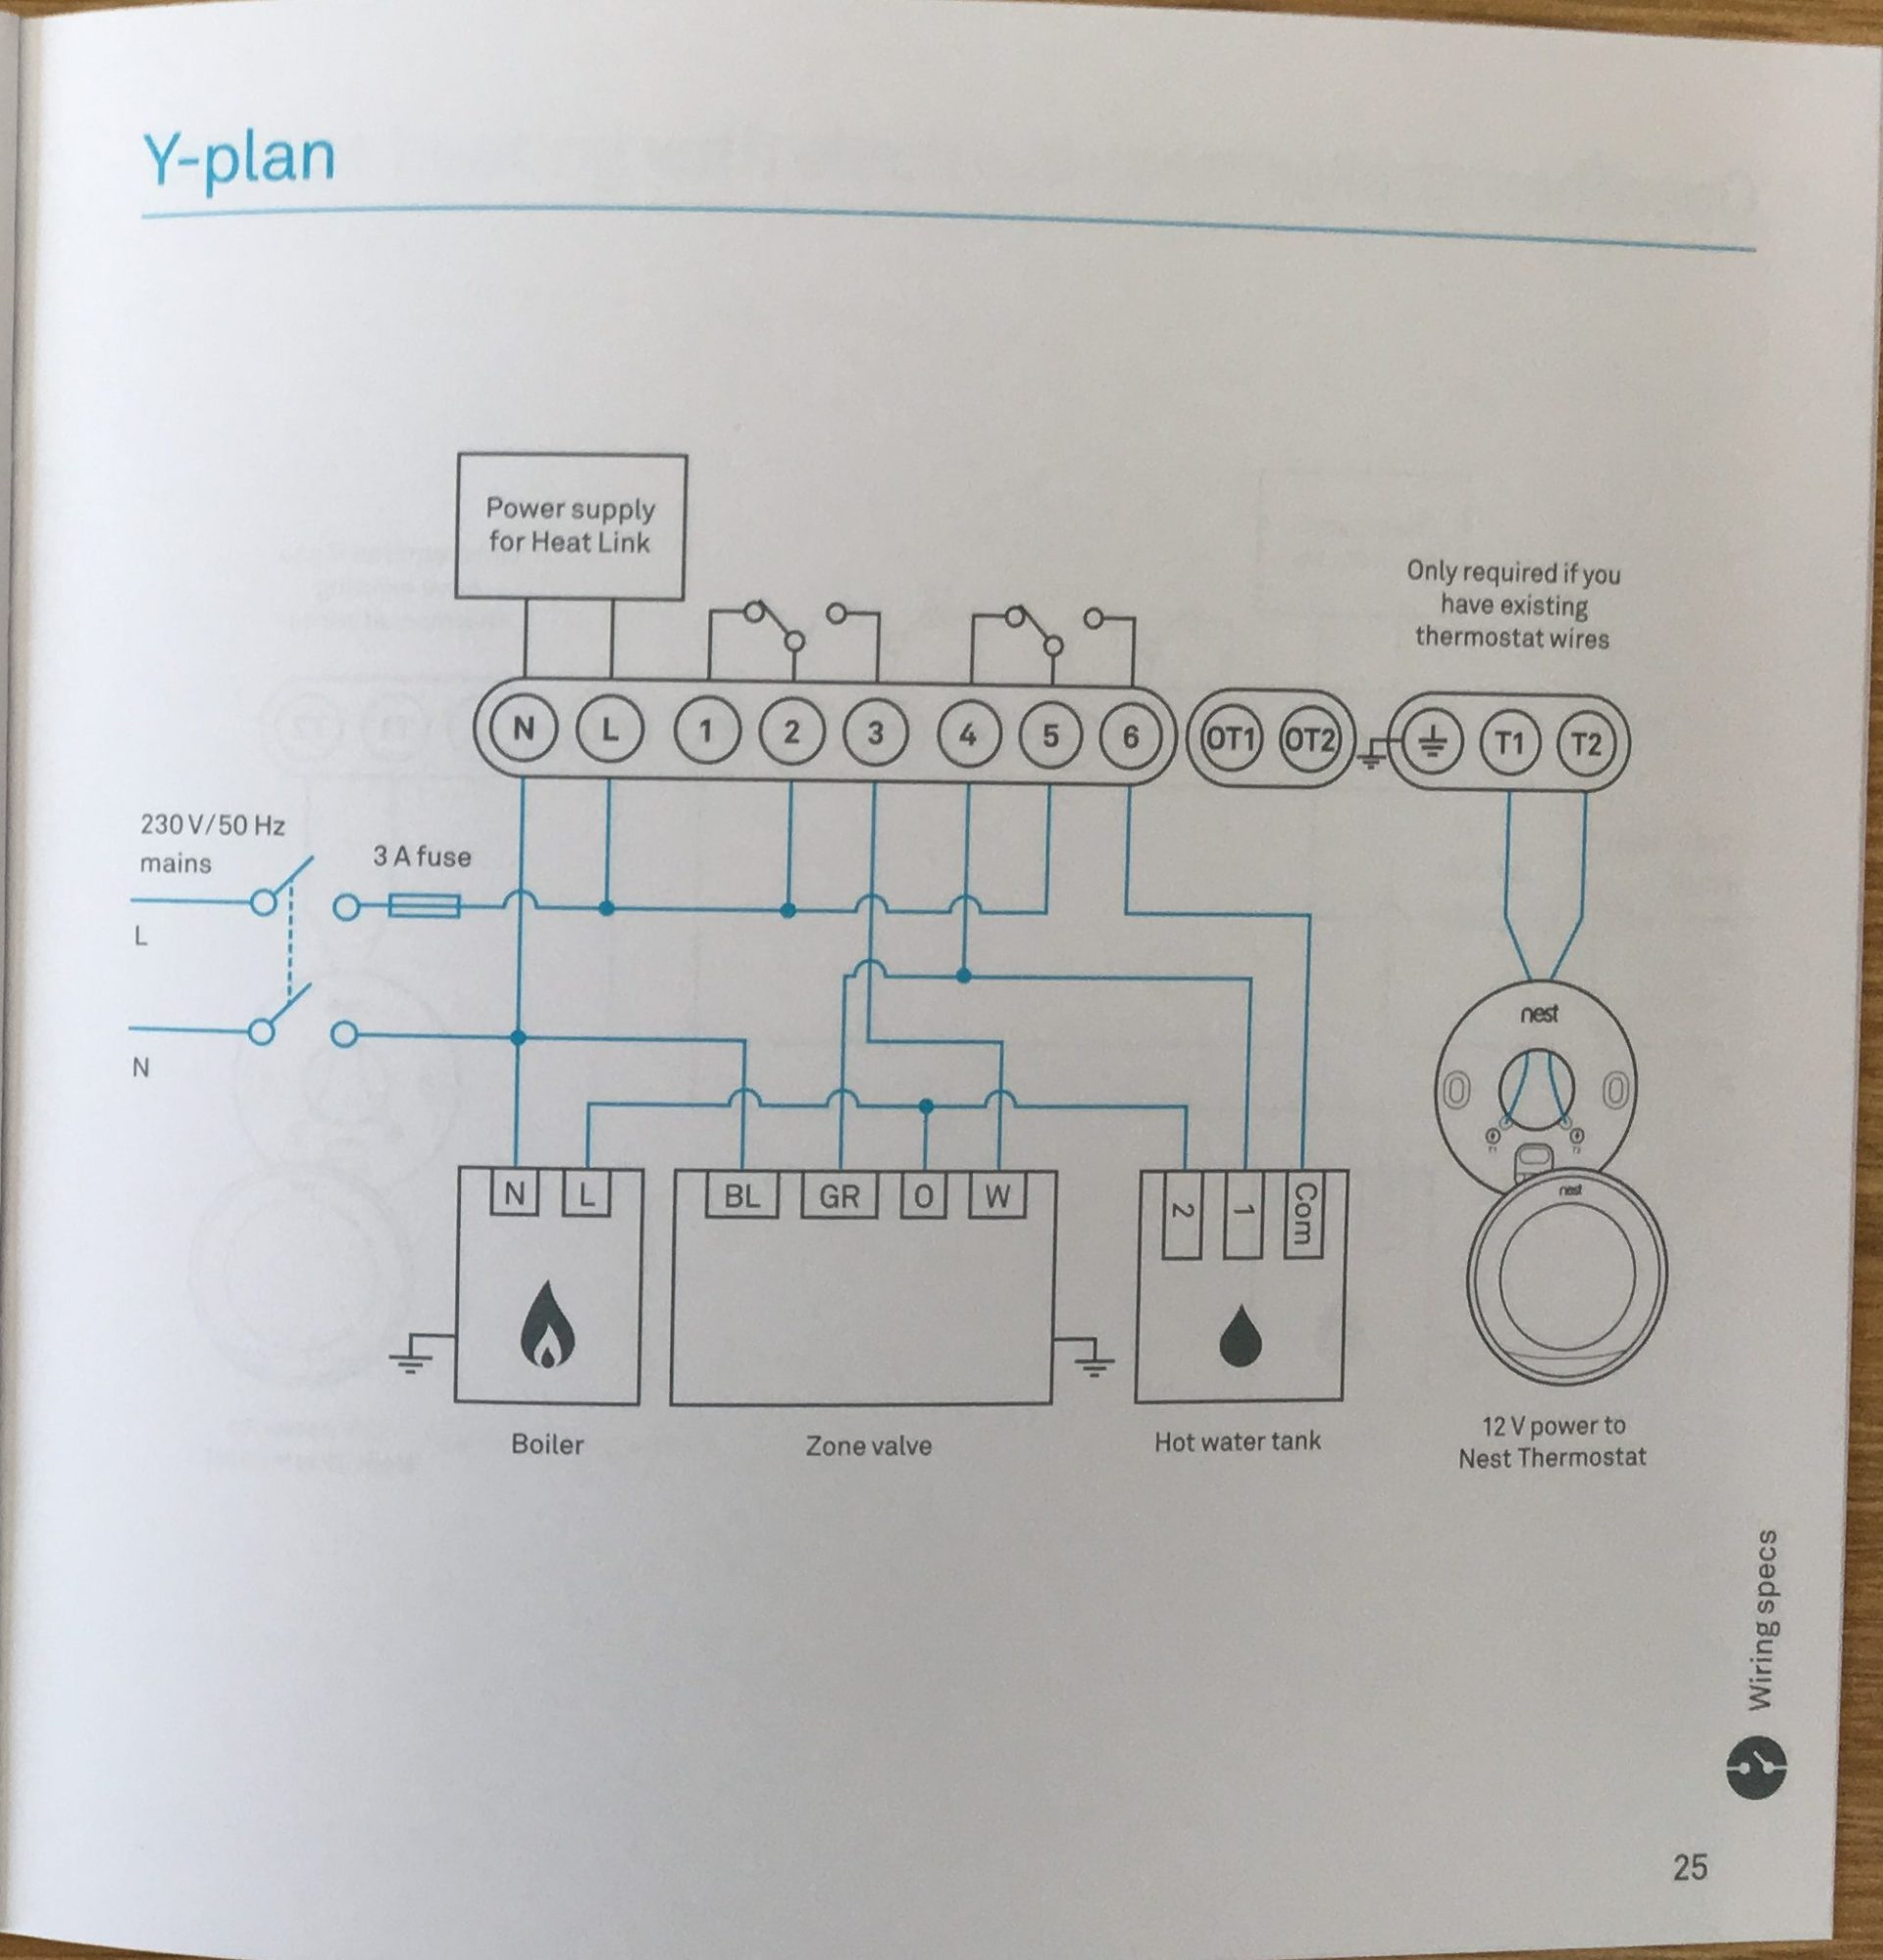 How To Install The Nest Learning Thermostat (3Rd Gen) In A Y-Plan - Nest Tstat Wiring Diagram